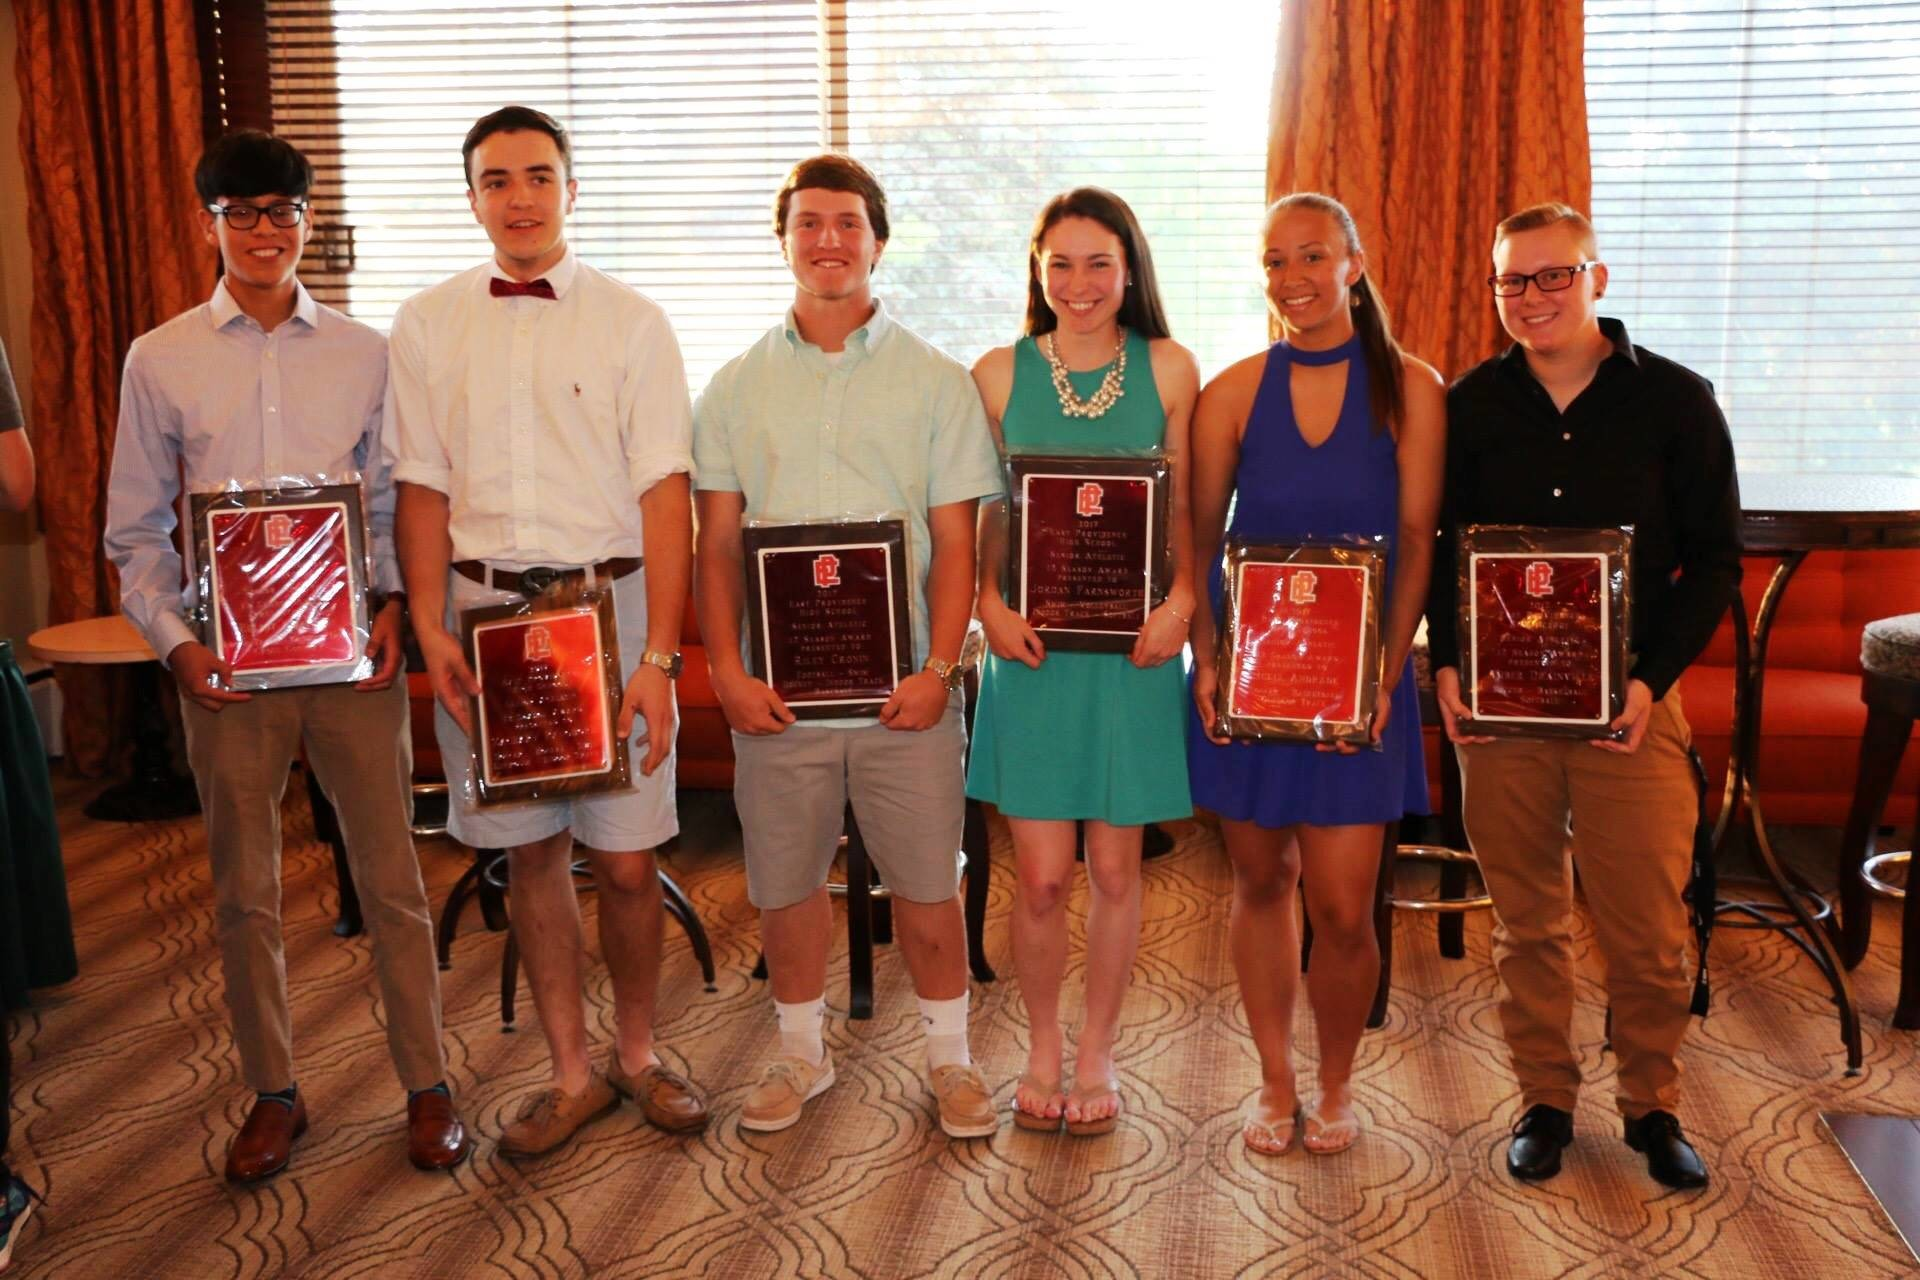 Six EPHS seniors who received awards in June for playing 12 seasons during their 4 years at EP, from left to right Elliot Charron, Zach Pangborn, Riley Cronin, Jordan Farnsworth, Julia Andrade, and Amber Drainville.